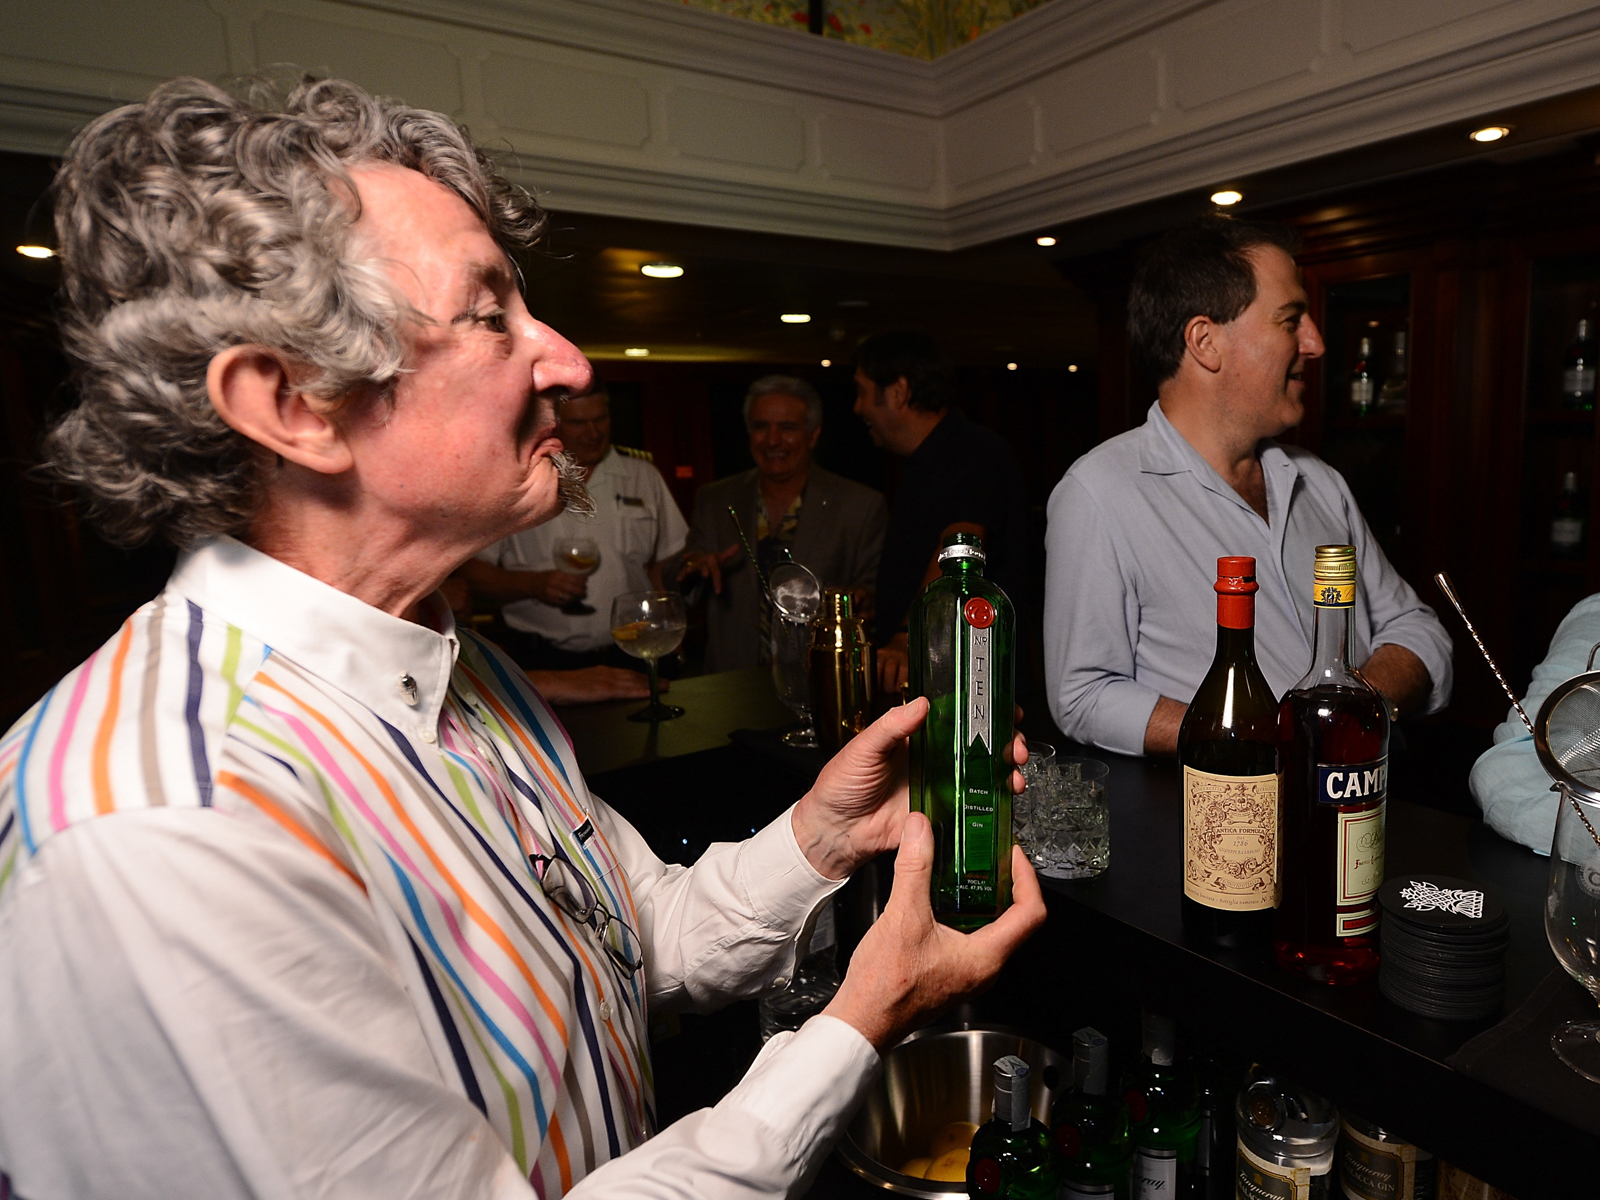 Gary Regan's Profound Legacy in the Cocktail World